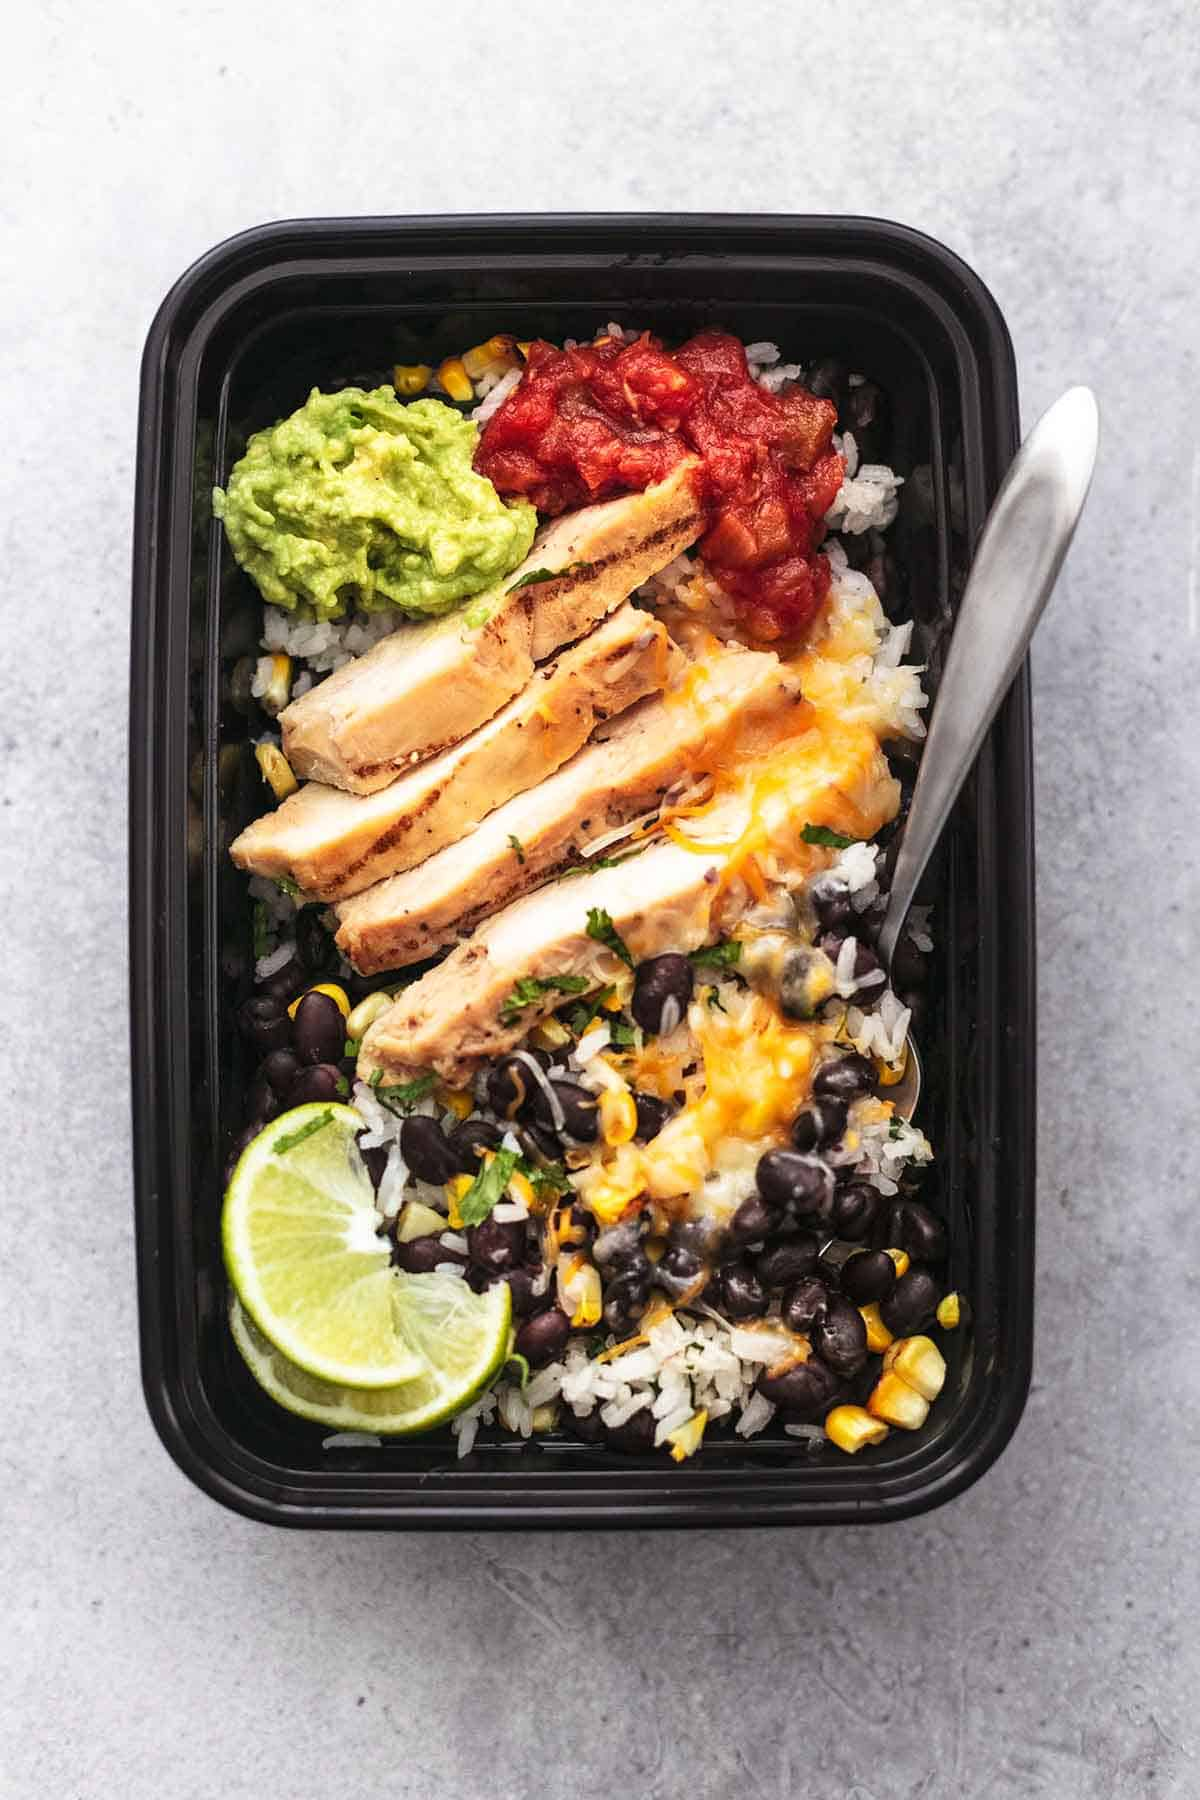 chicken, rice, beans, cheese, limes, guacamole, salsa in a meal prep container